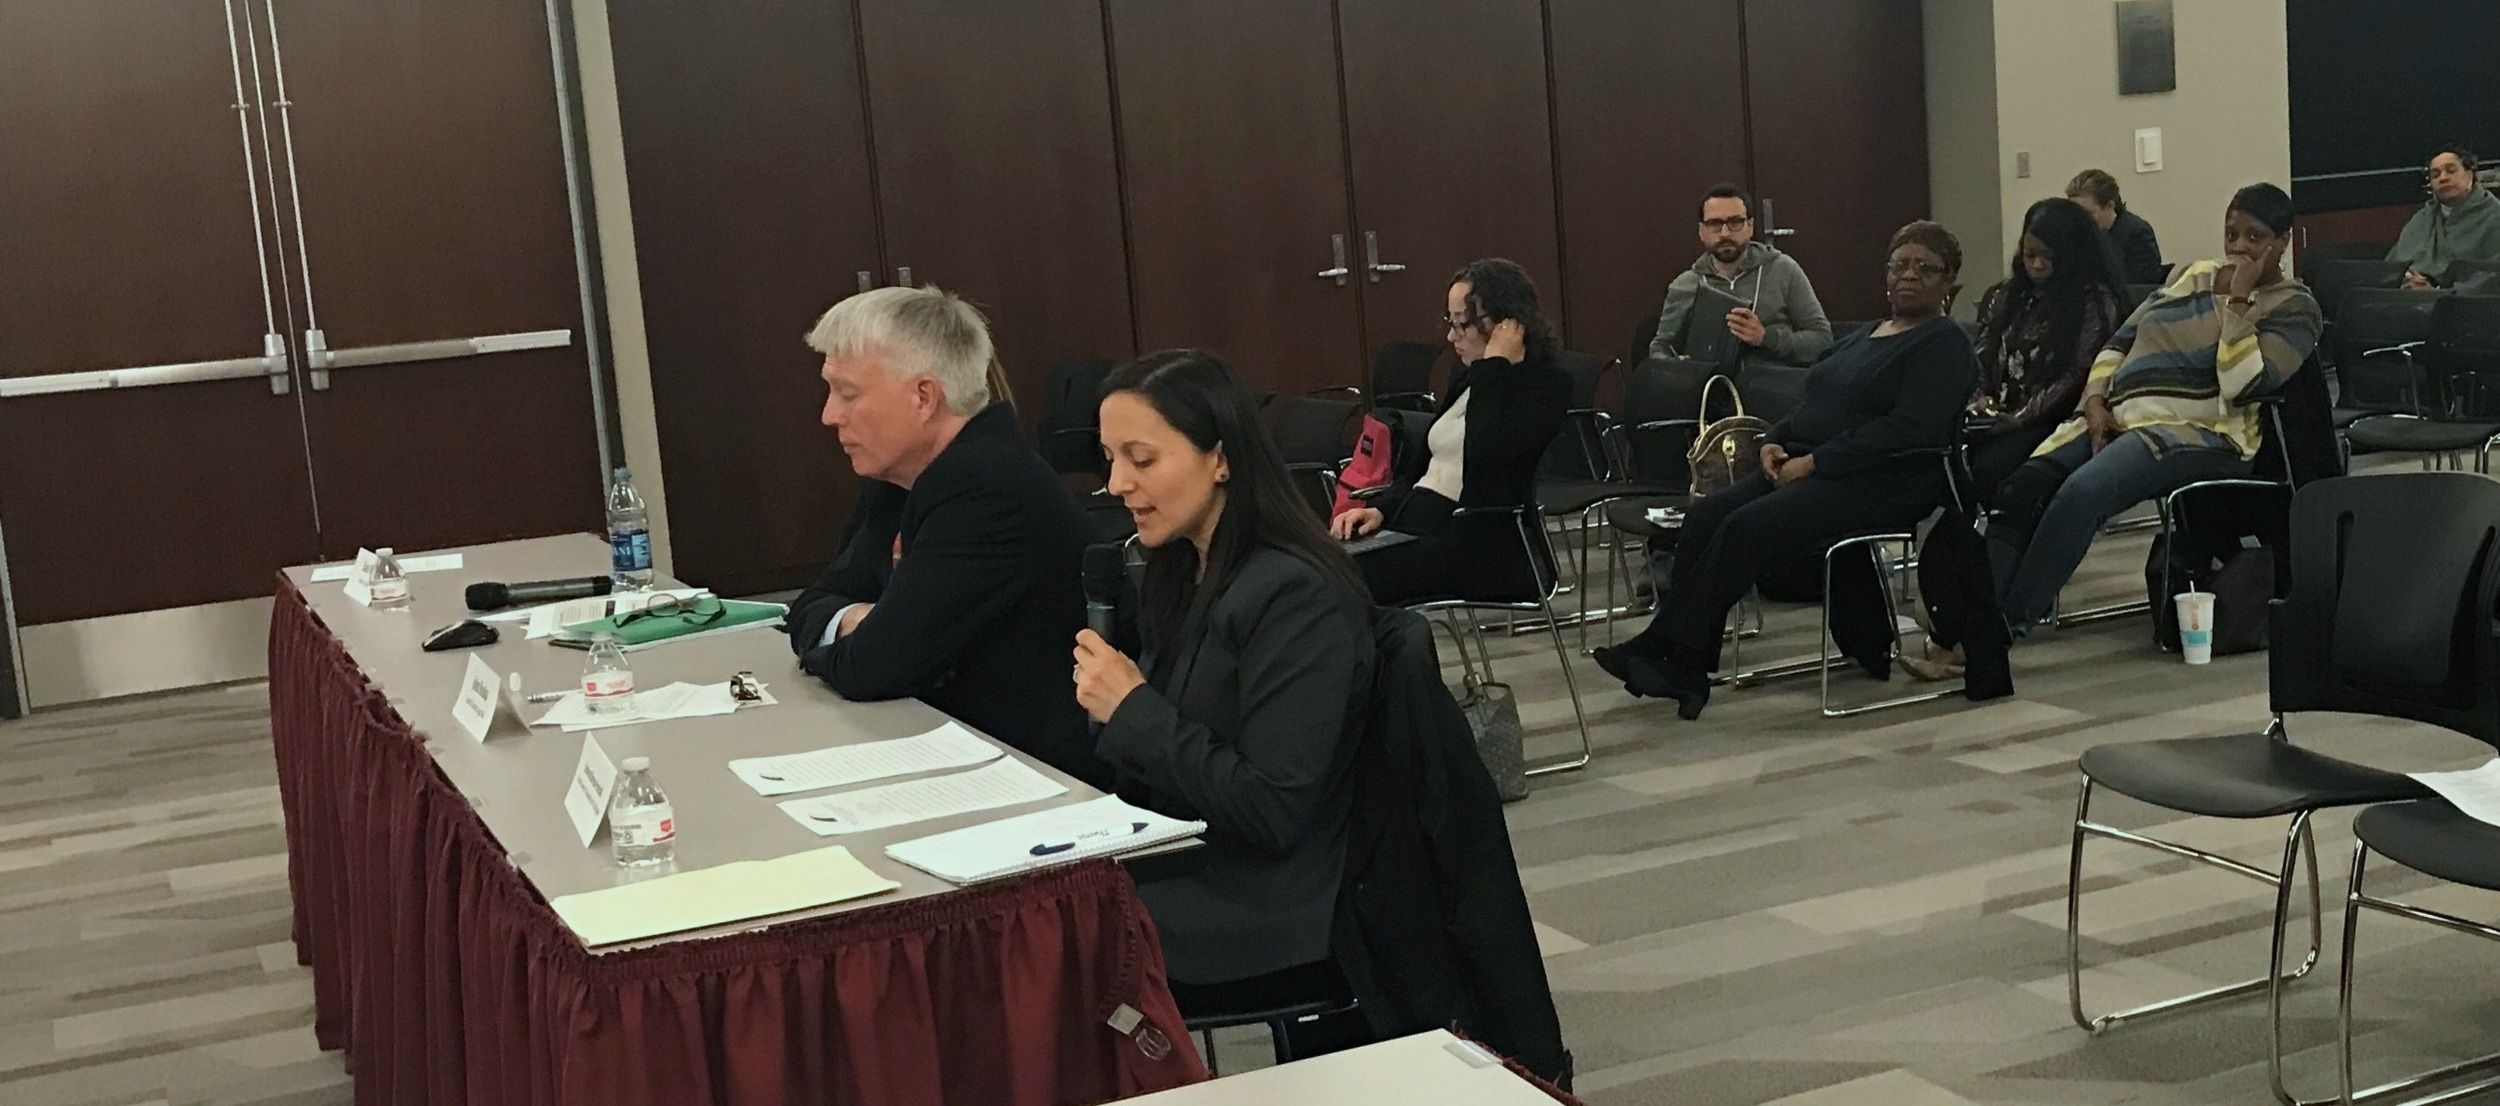 Senior Staff Attorney Barbara Barreno-Paschall delivers testimony before the U.S. Civil Rights Commission's Illinois Advisory Committee.